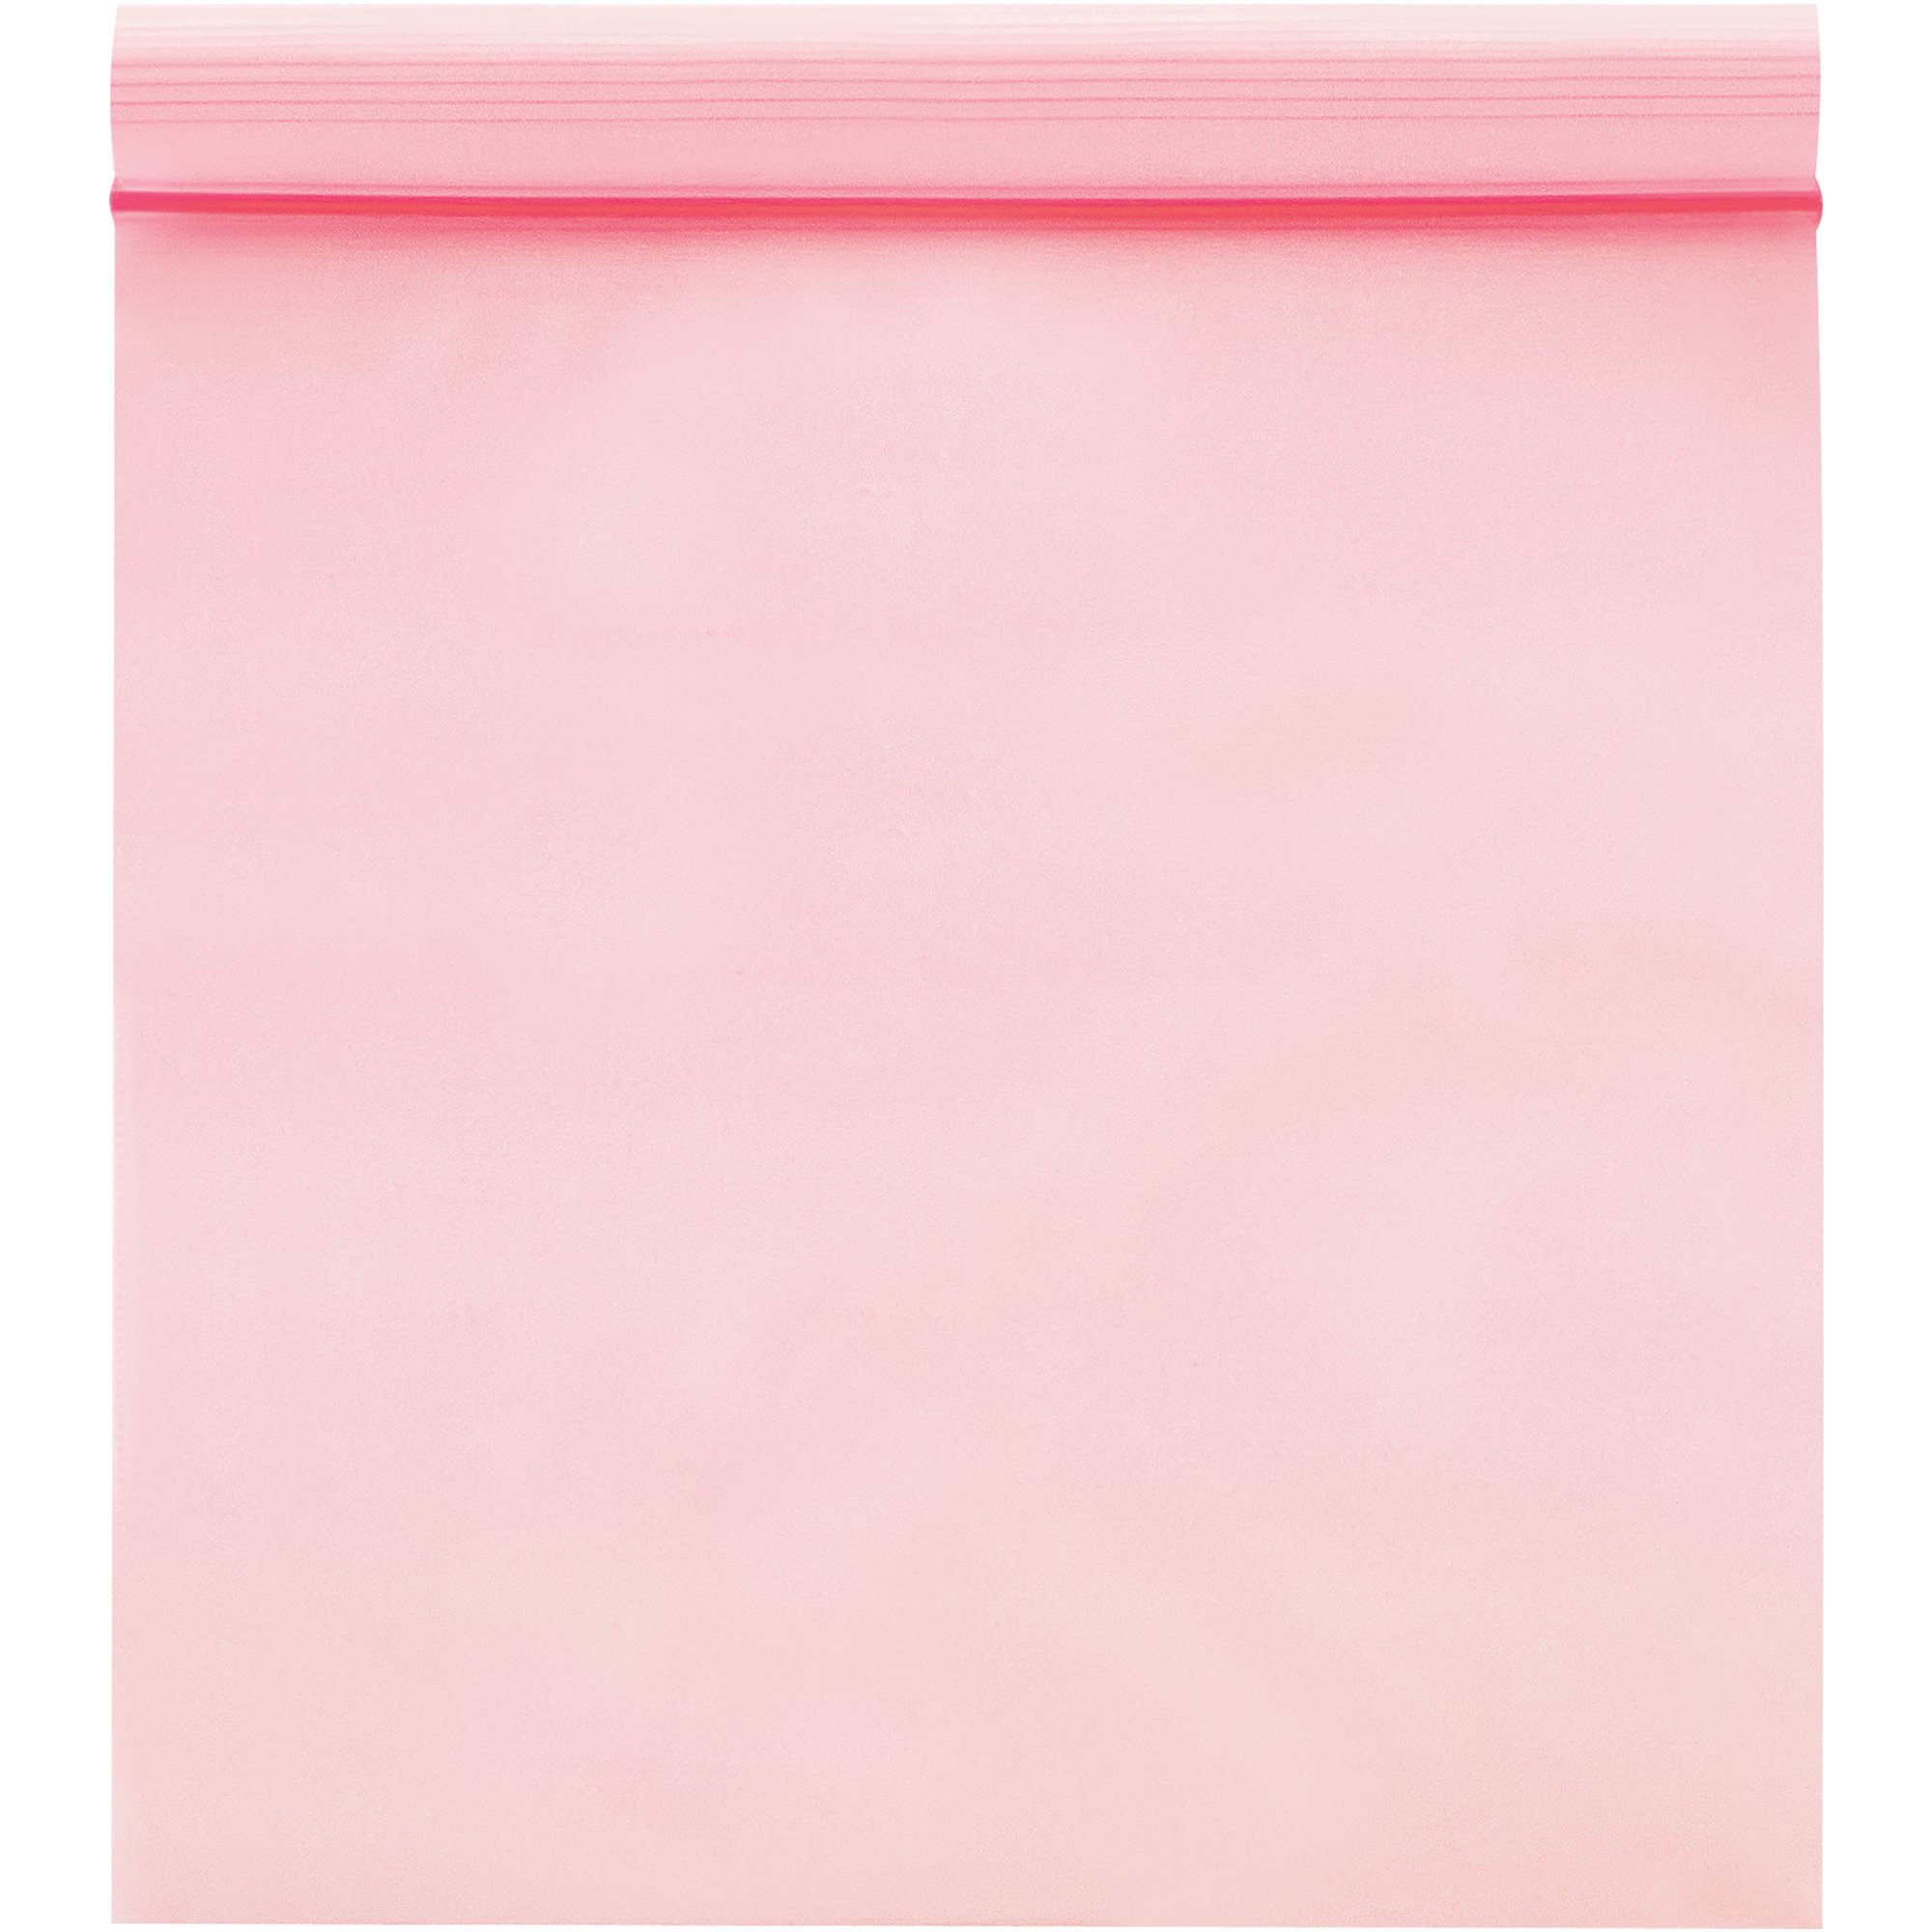 Boxes Fast BFPBAS2160 Anti-Static 4 Mil Reclosable Poly Bags, 9'' x 12'', Pink (Pack of 1000)